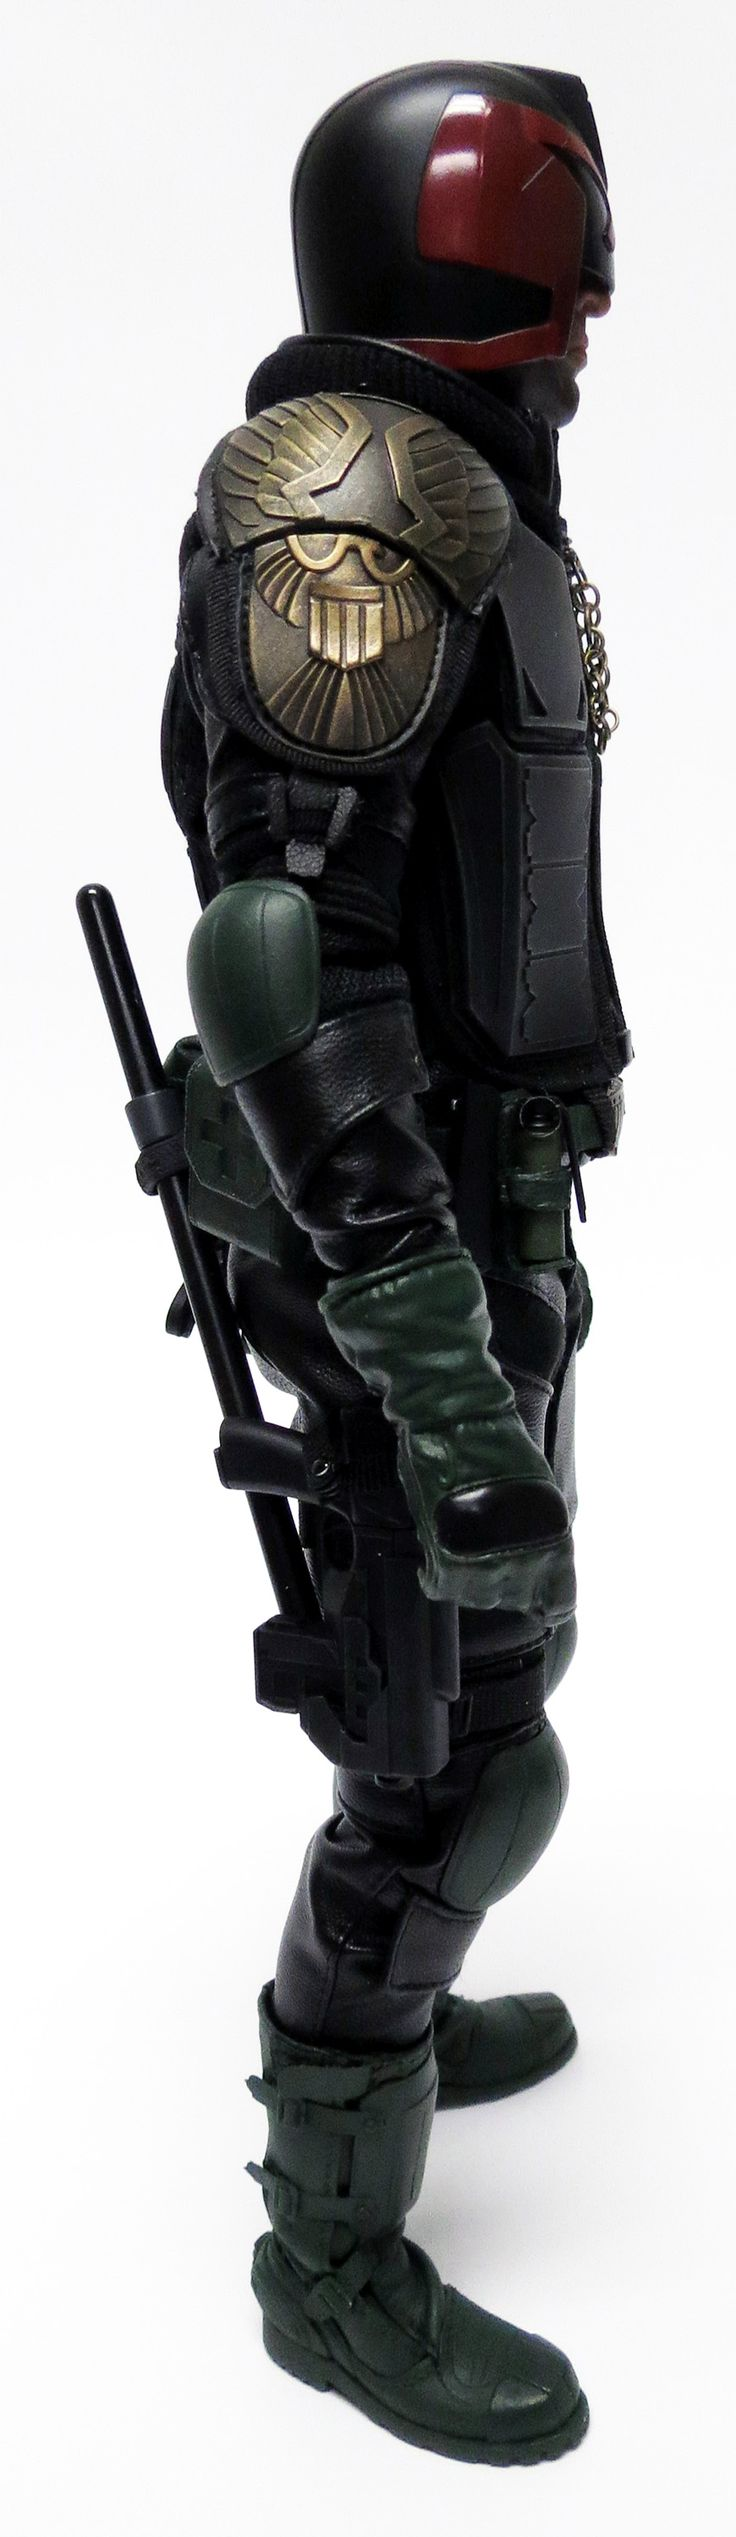 Custom Judge Dredd Art Figures 1/6 figure - custom and photo by Dye Customs